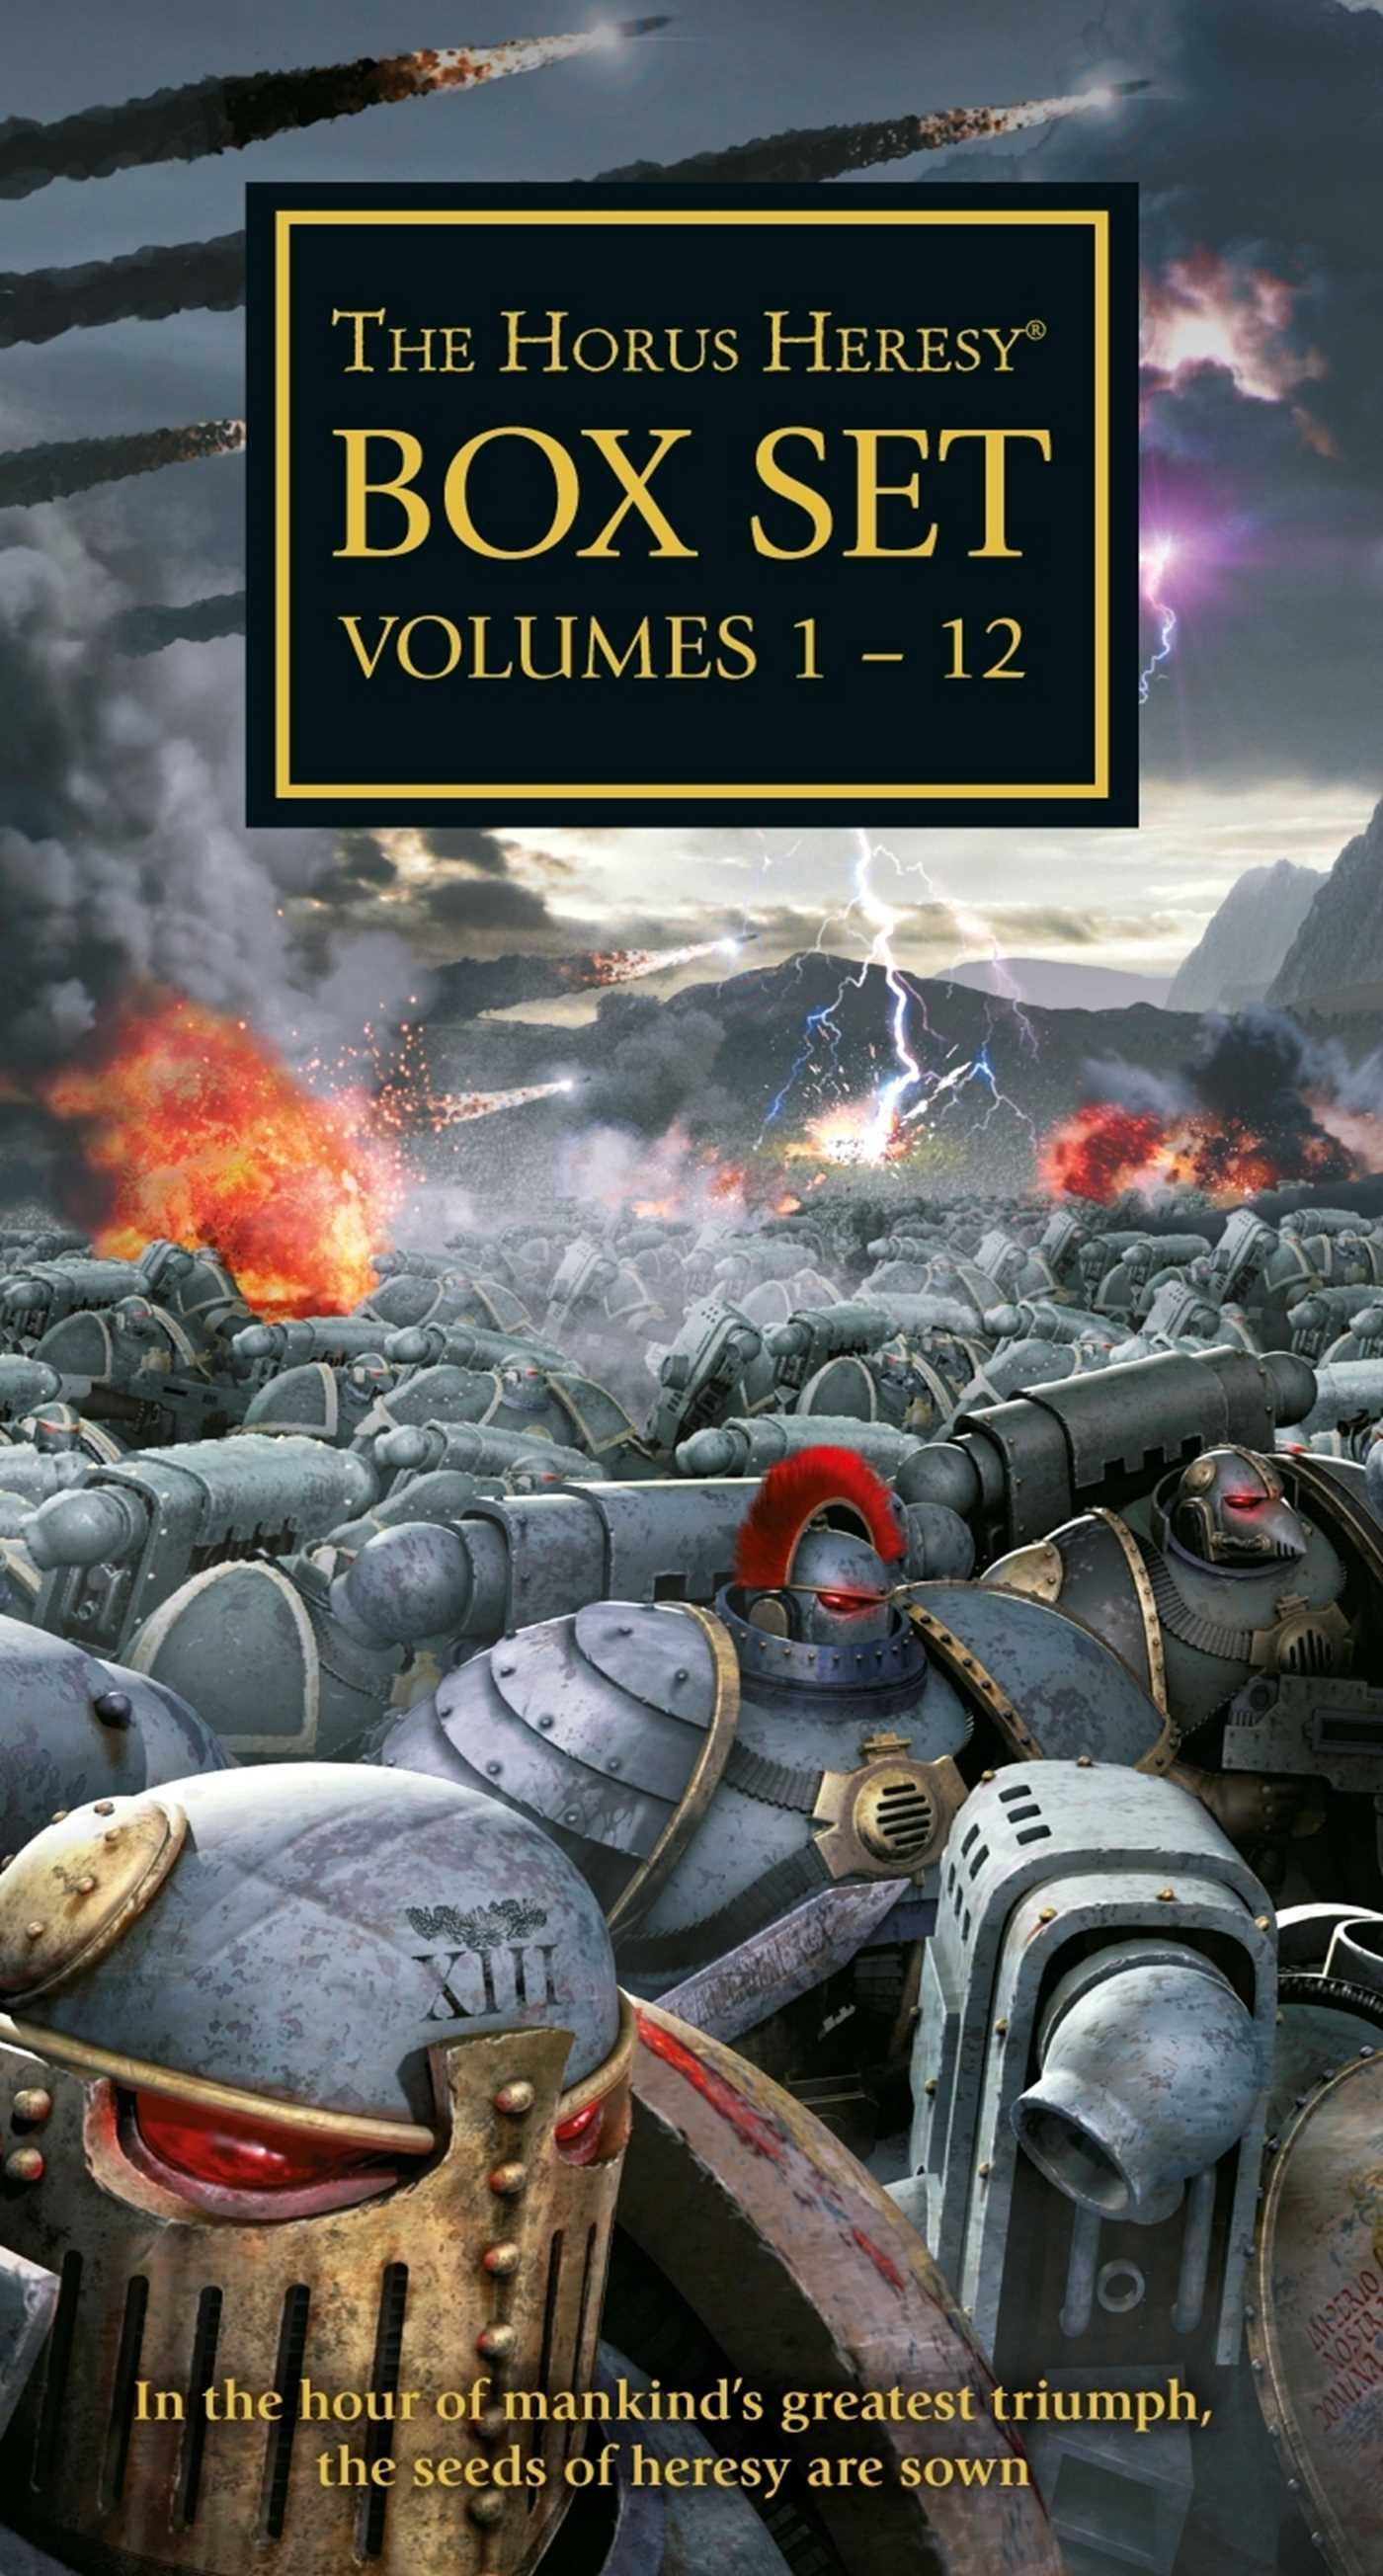 Horus-heresy-box-set-volumes-1-12-9781849708296_hr